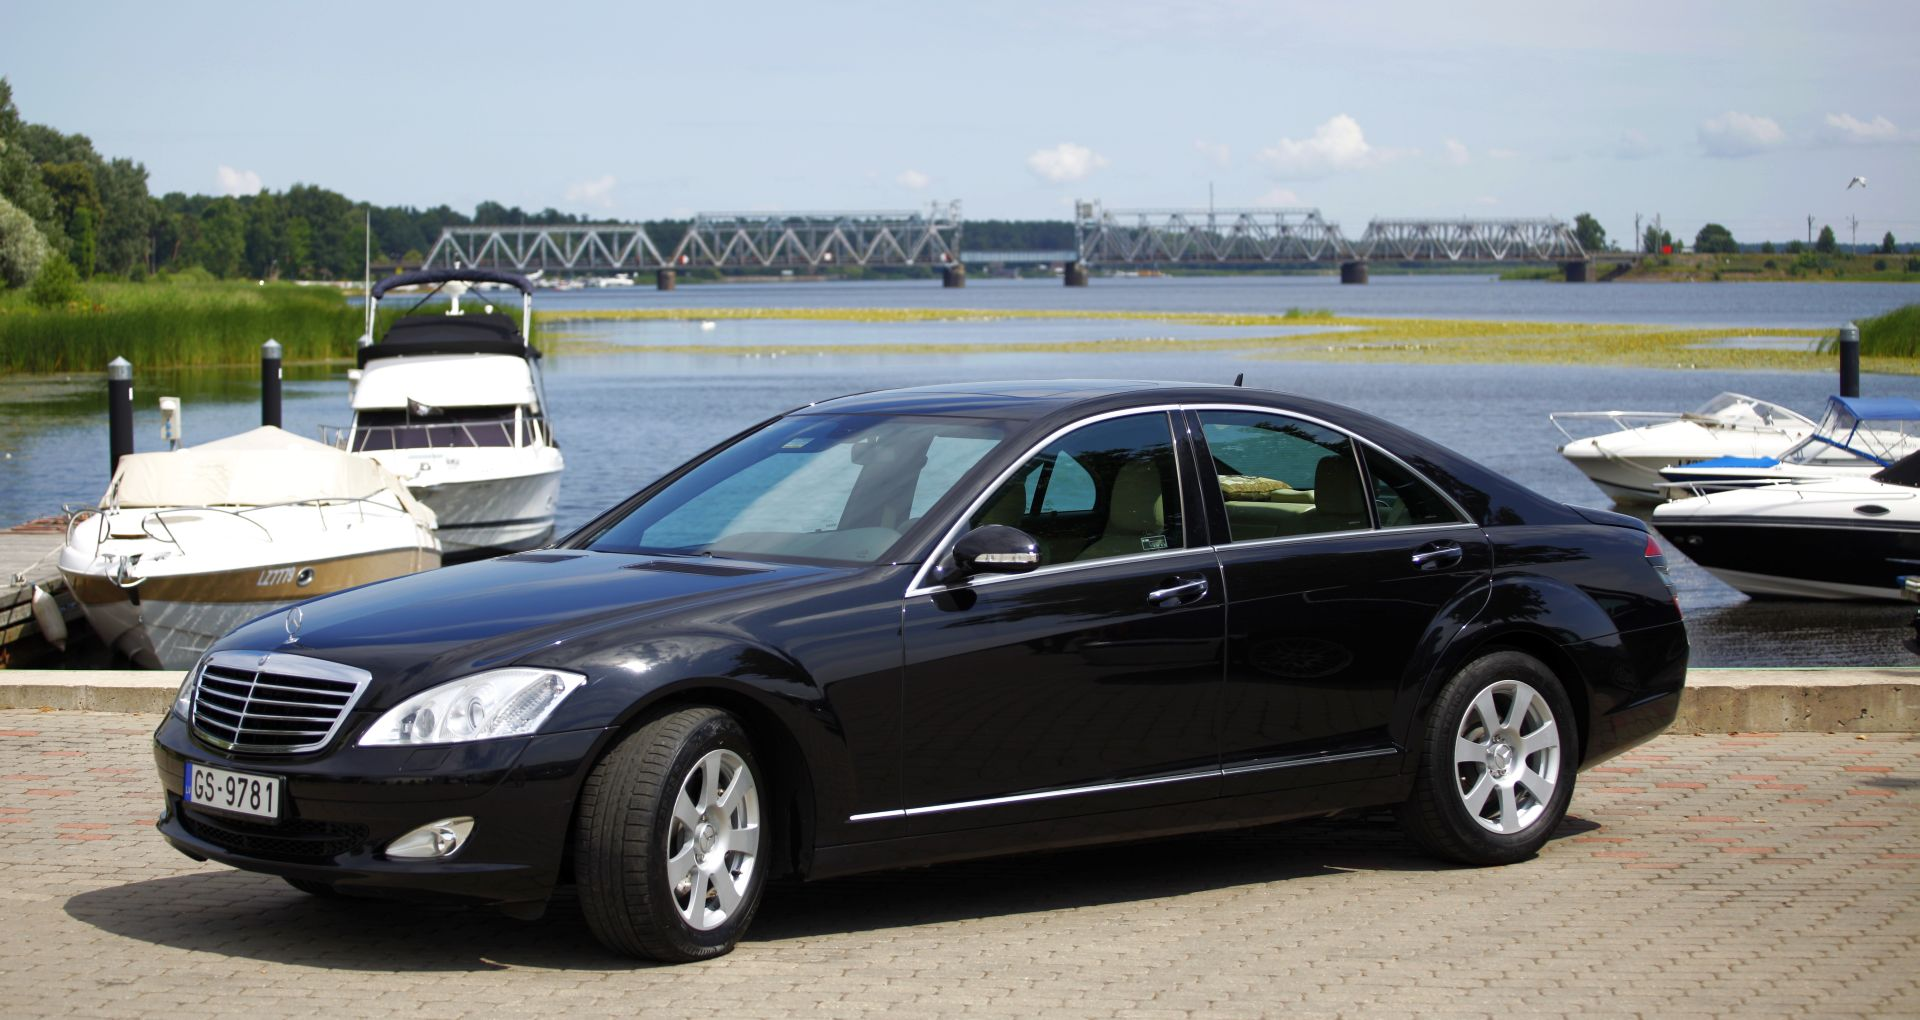 Karavan.LV_Jurmala_VIP_CAR_rent